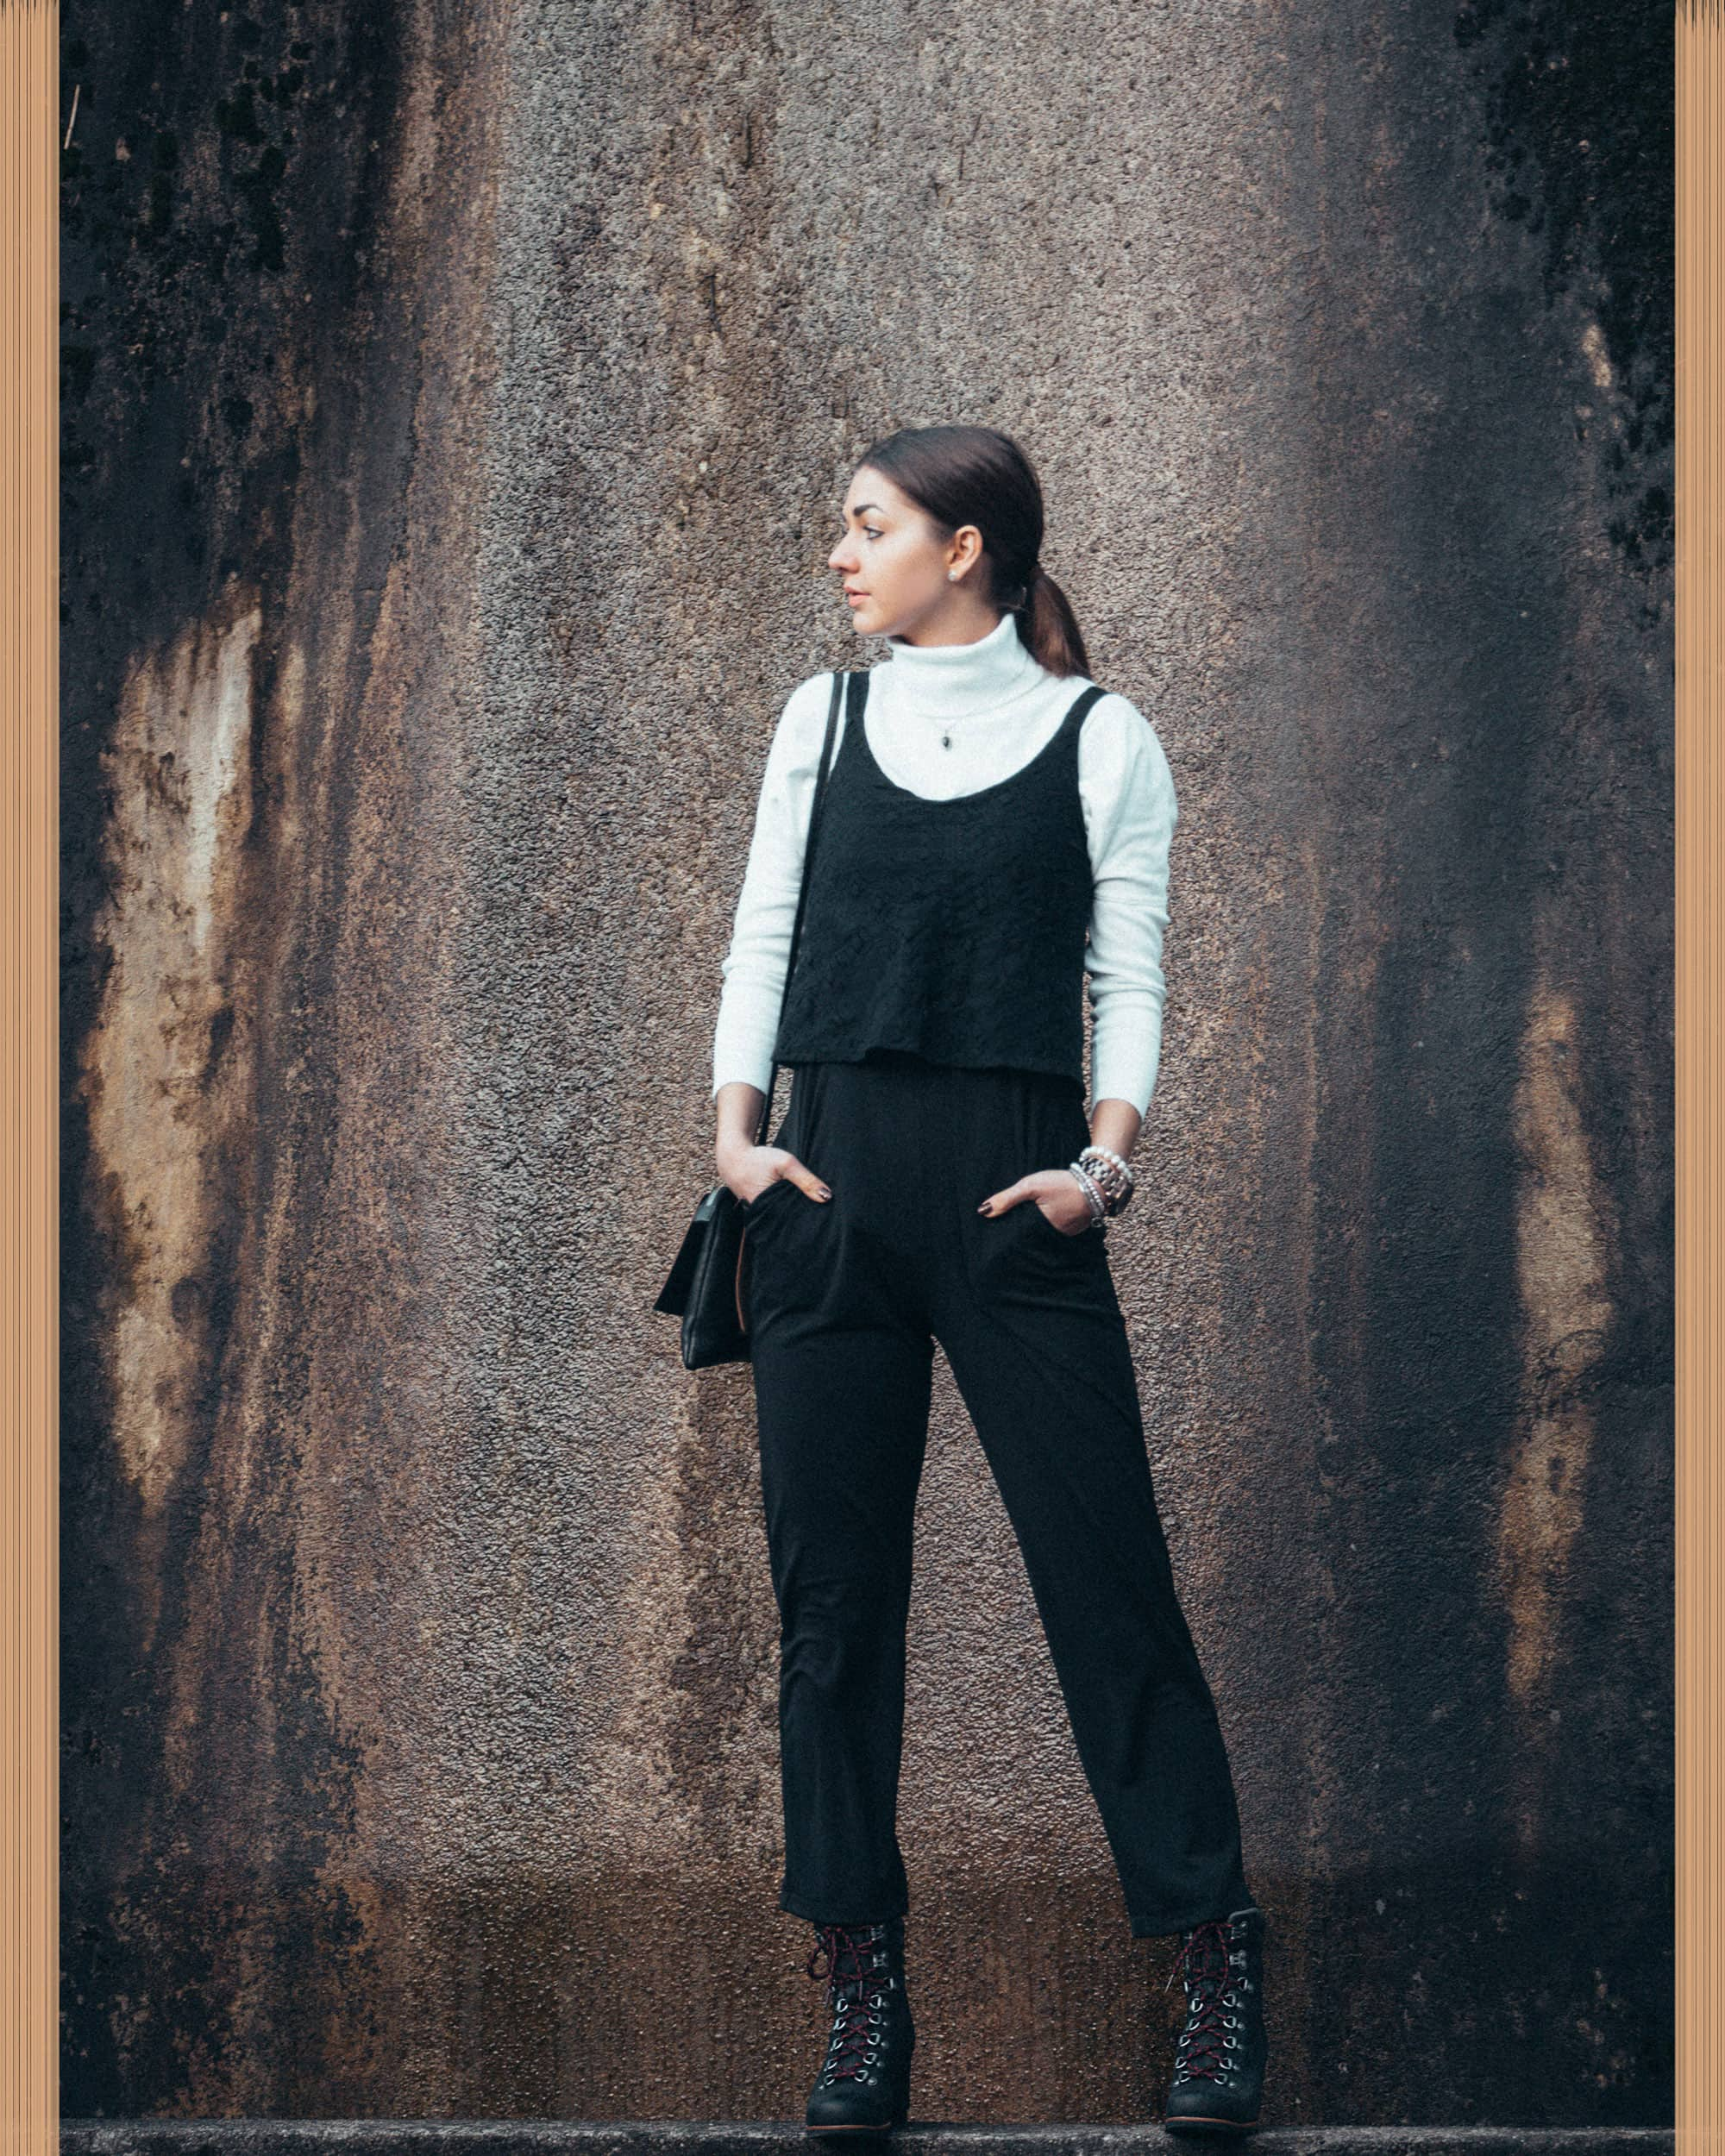 Minimalism/Black-and-white/Jumpsuit/Turtleneck/Sorel-boots/Clutch/Outfit/Inspiration/Classics/Fashion